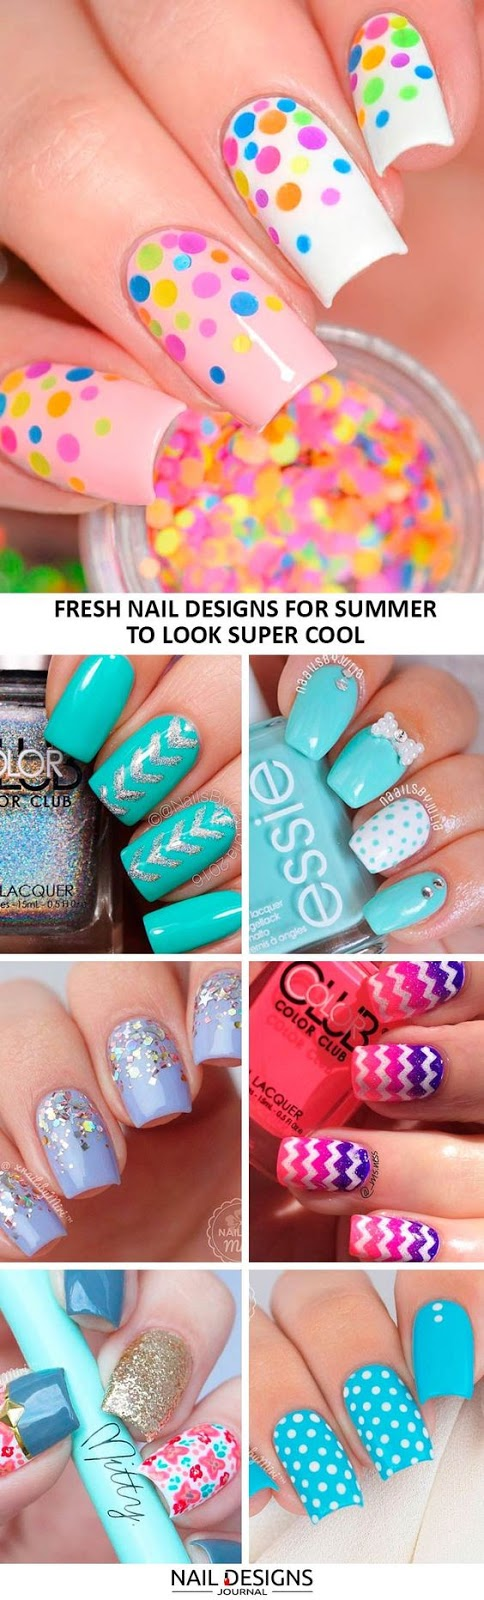 21 Lovely Nail Designs for Summer 2017